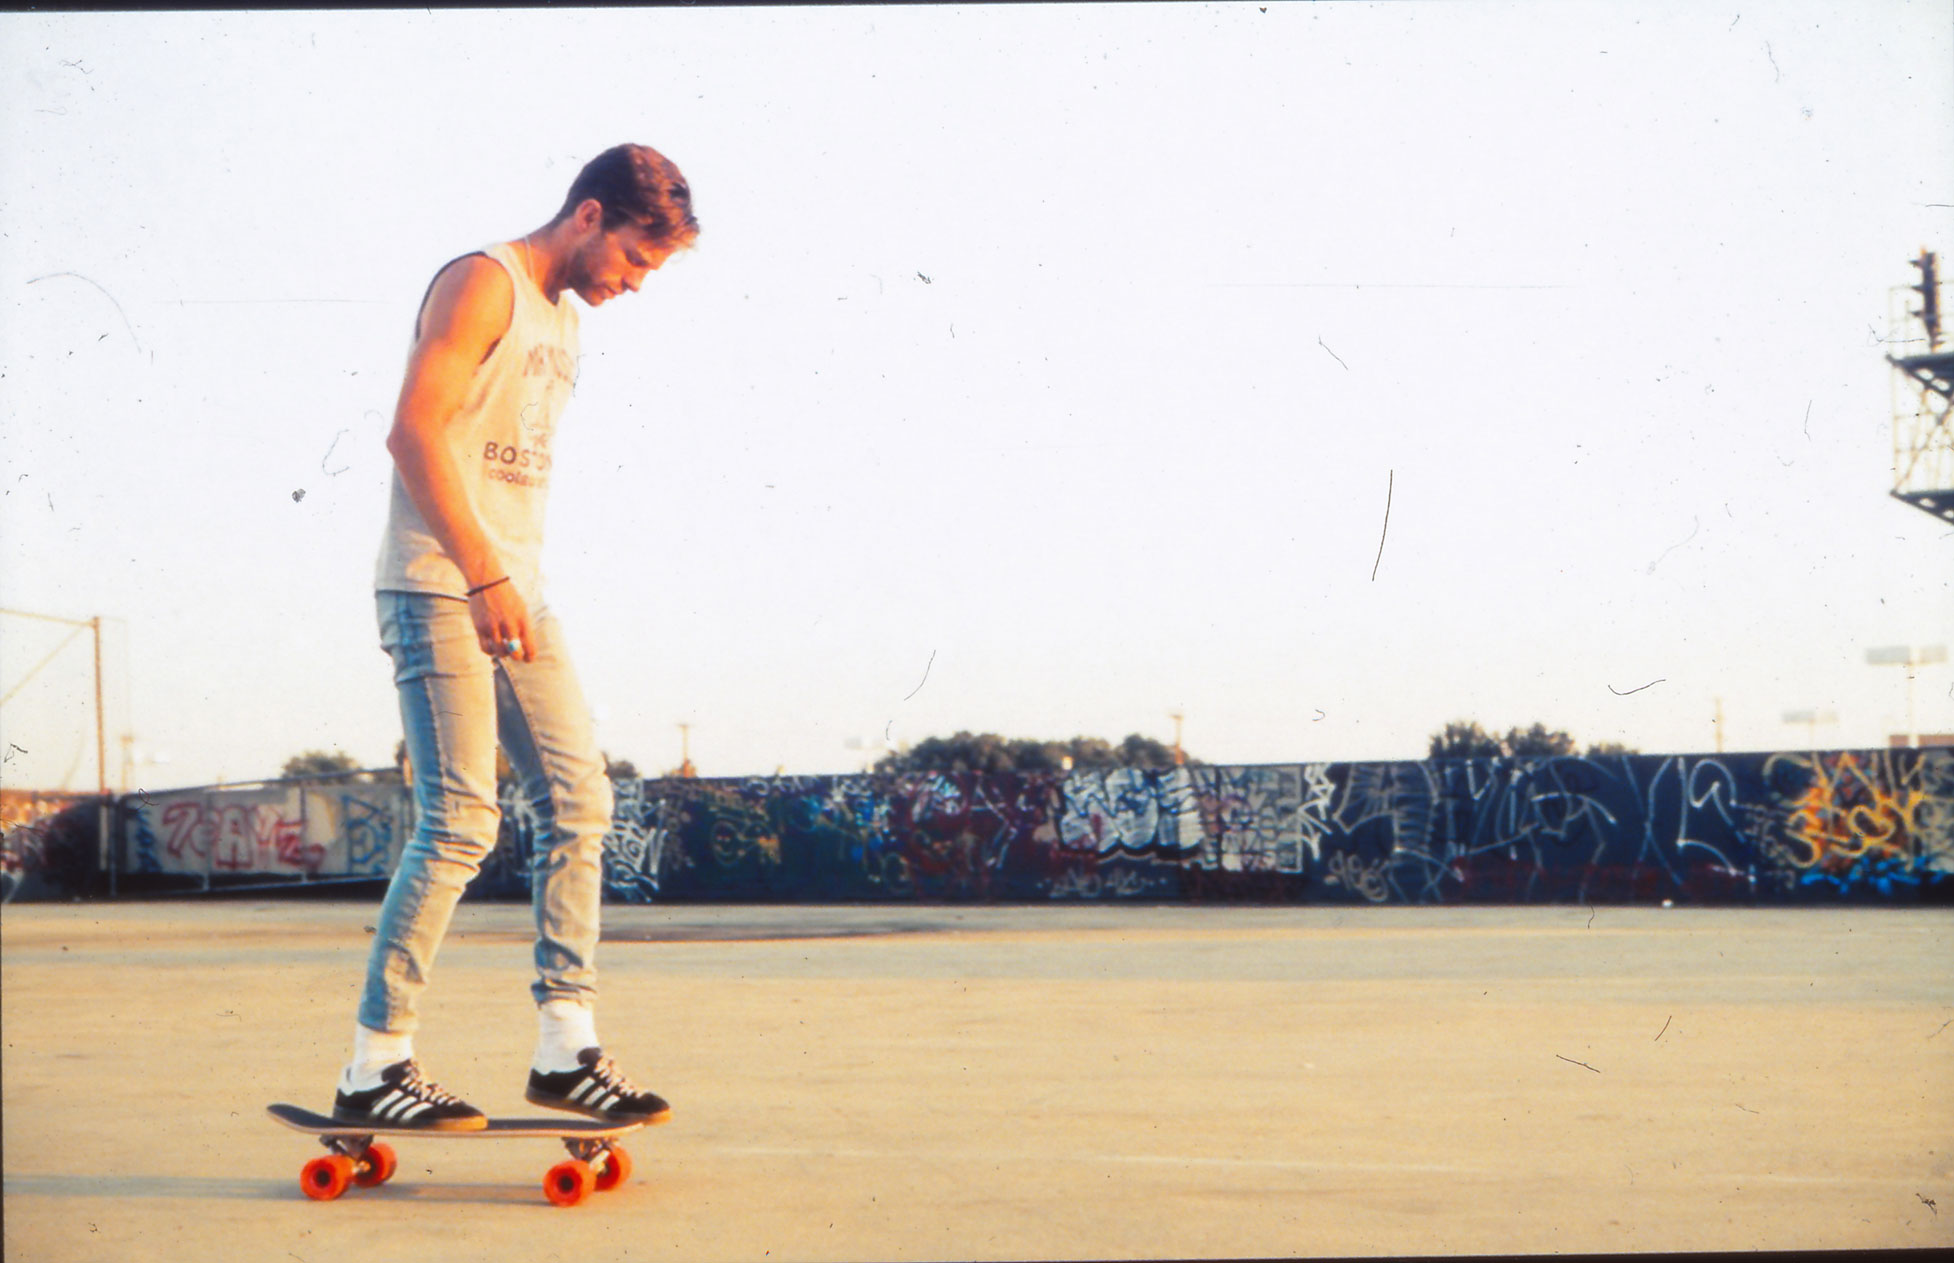 Miguel-Skate-with-dust